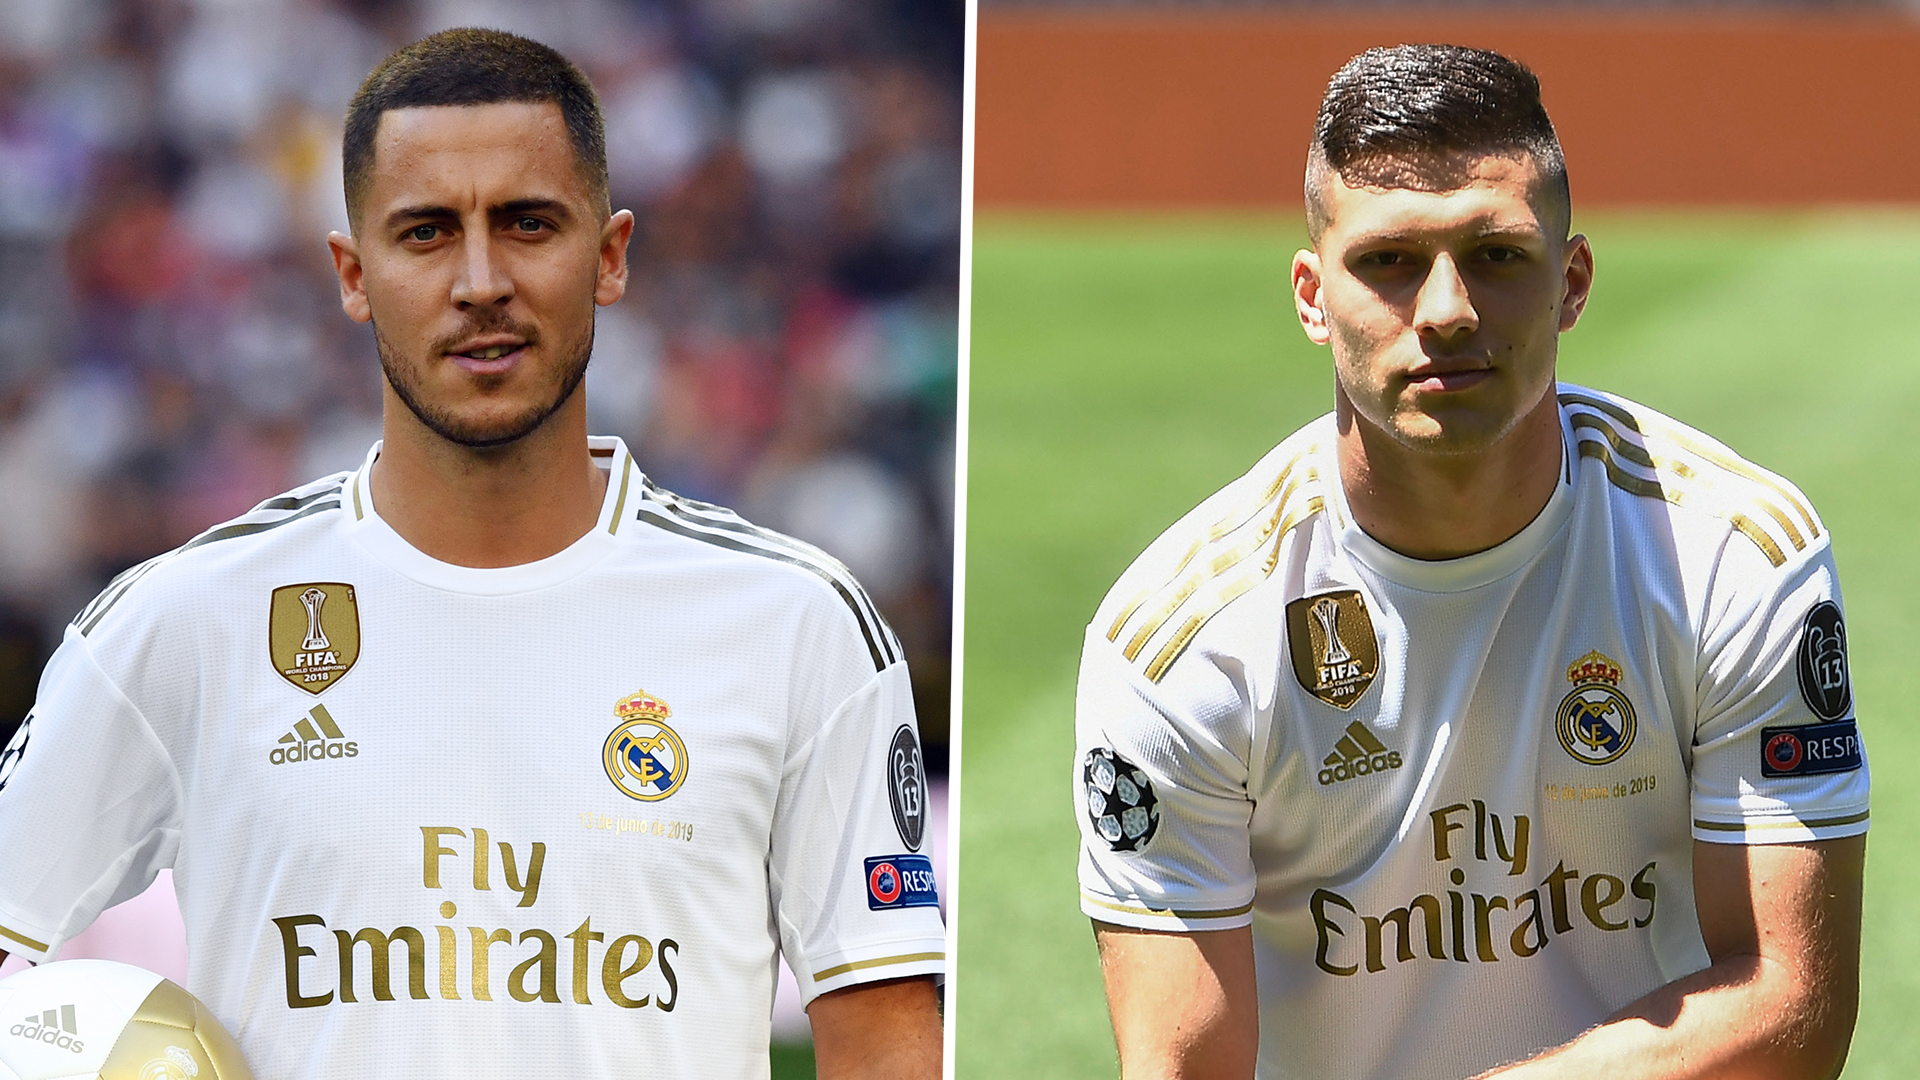 Real Madrid's Luka Jovic is a 'goal machine' every big club needs – Milosevic